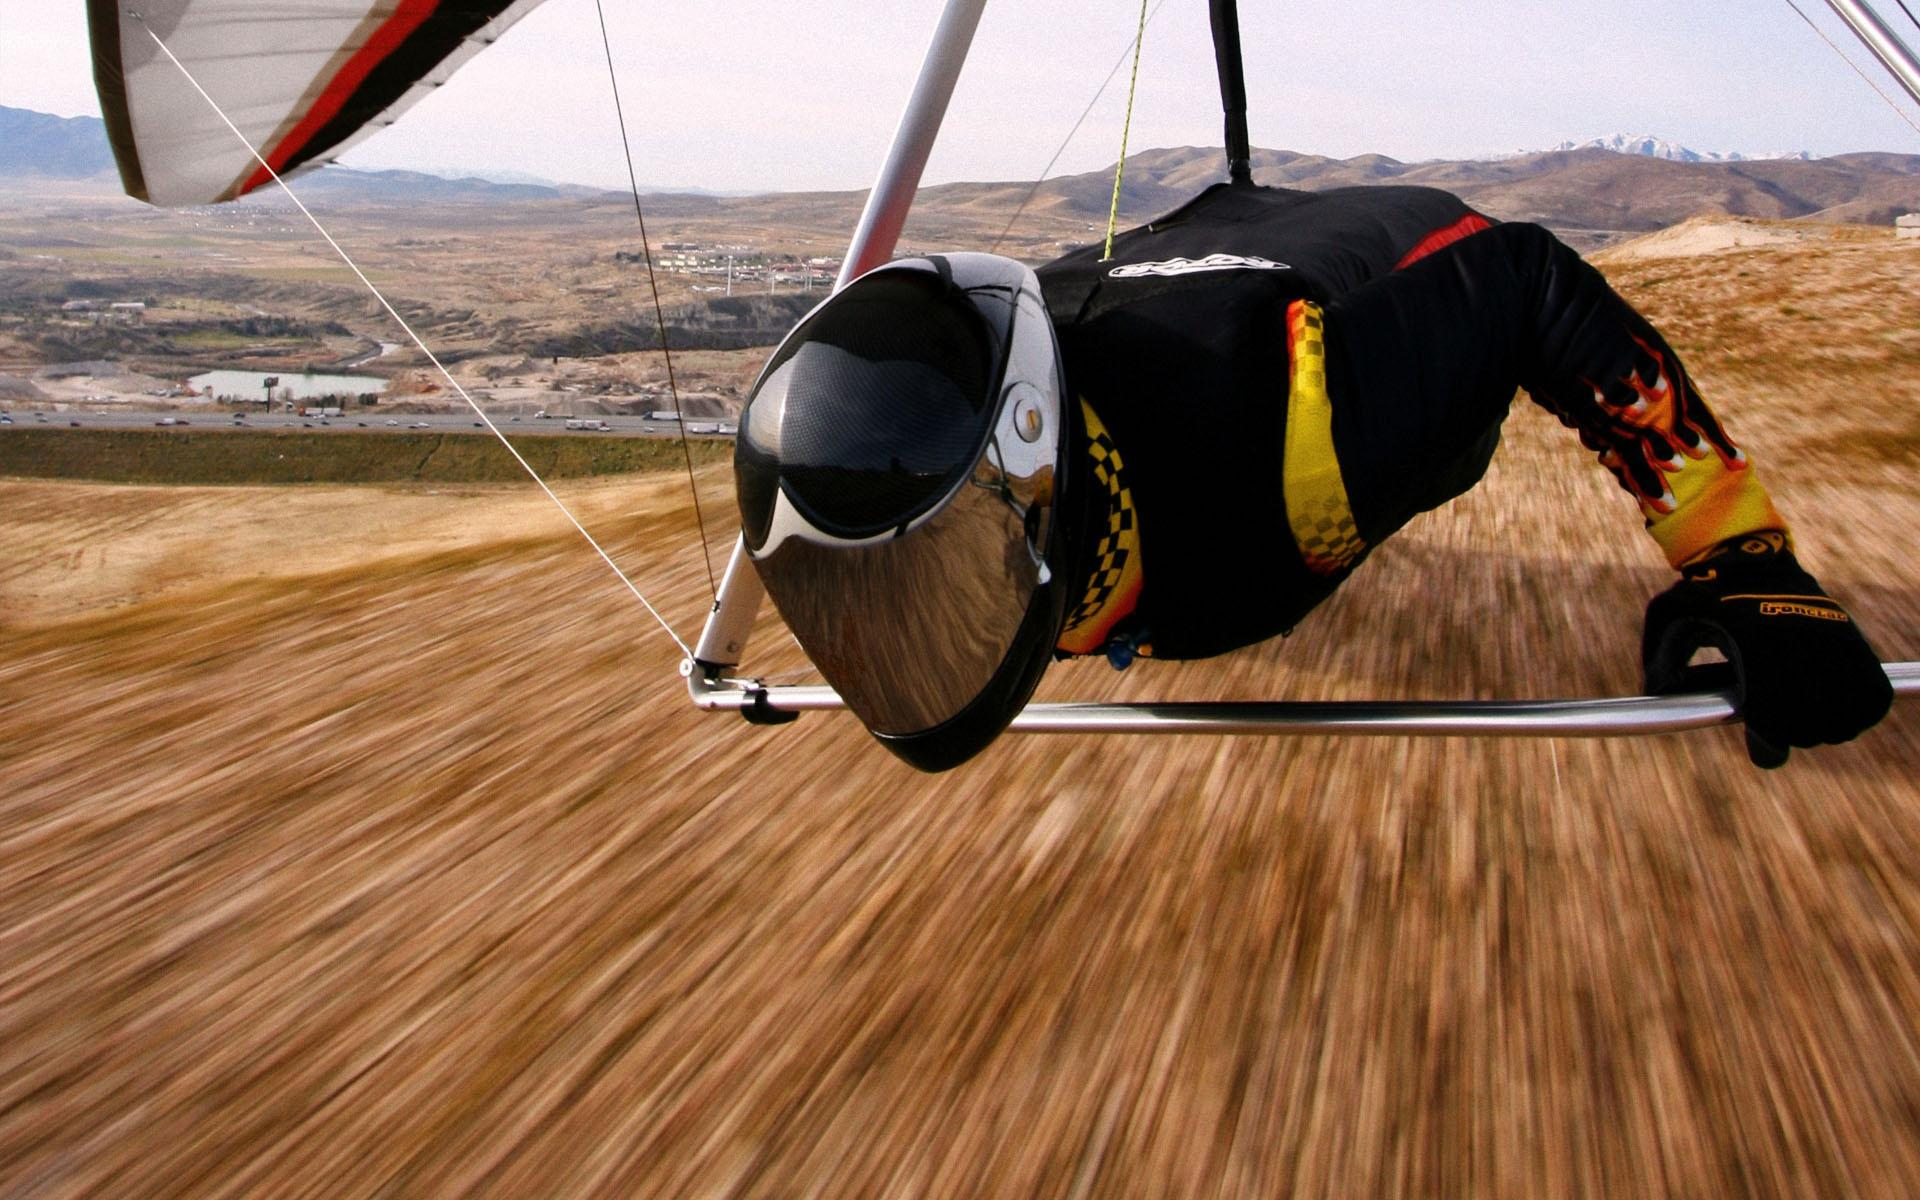 1920x1200 - Hang Gliding Wallpapers 19